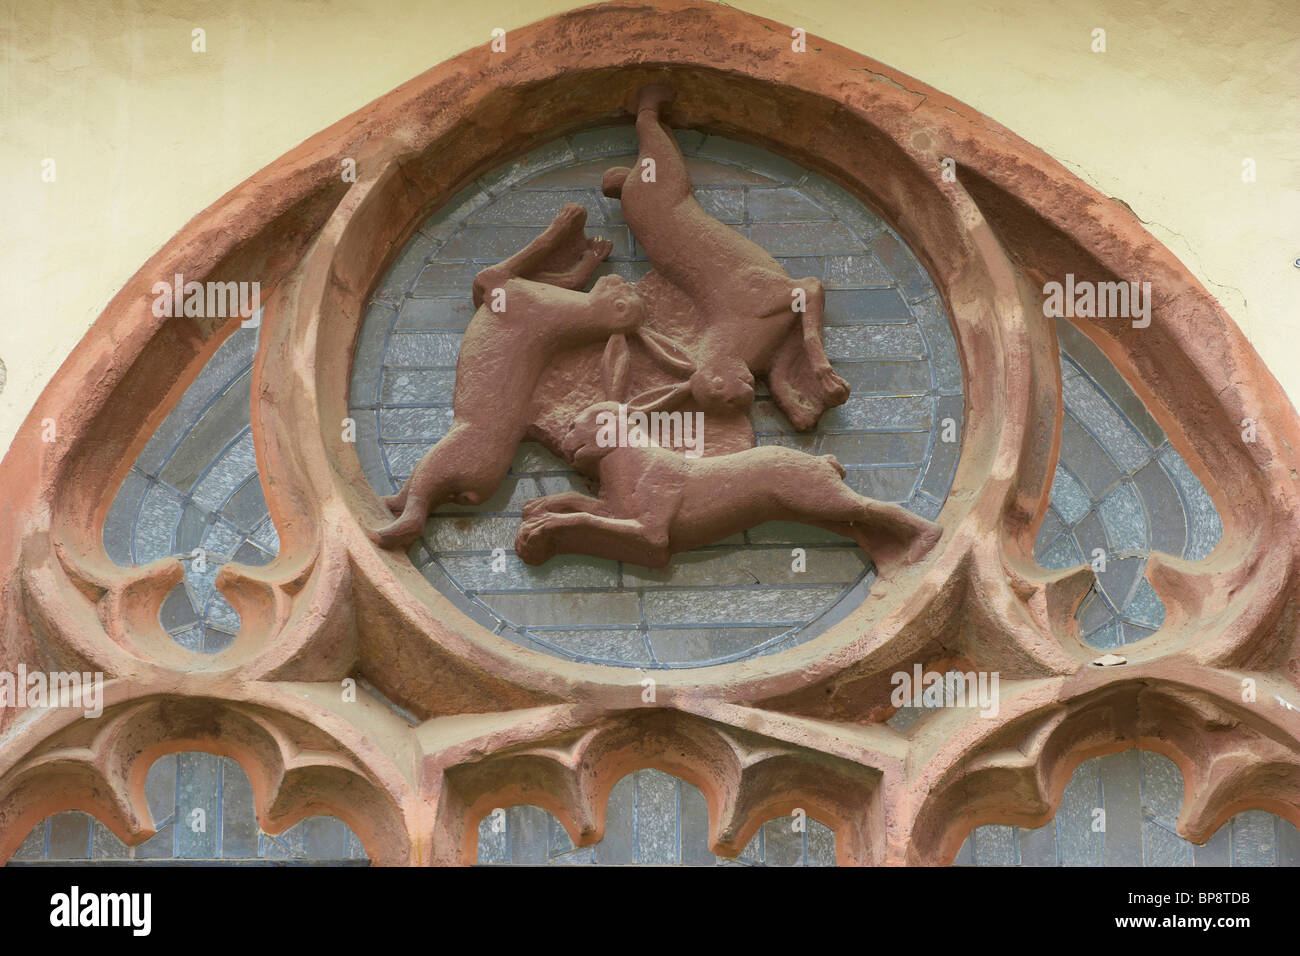 Bilder Von Fenstern Fenster Stockfotos And Fenster Bilder Alamy